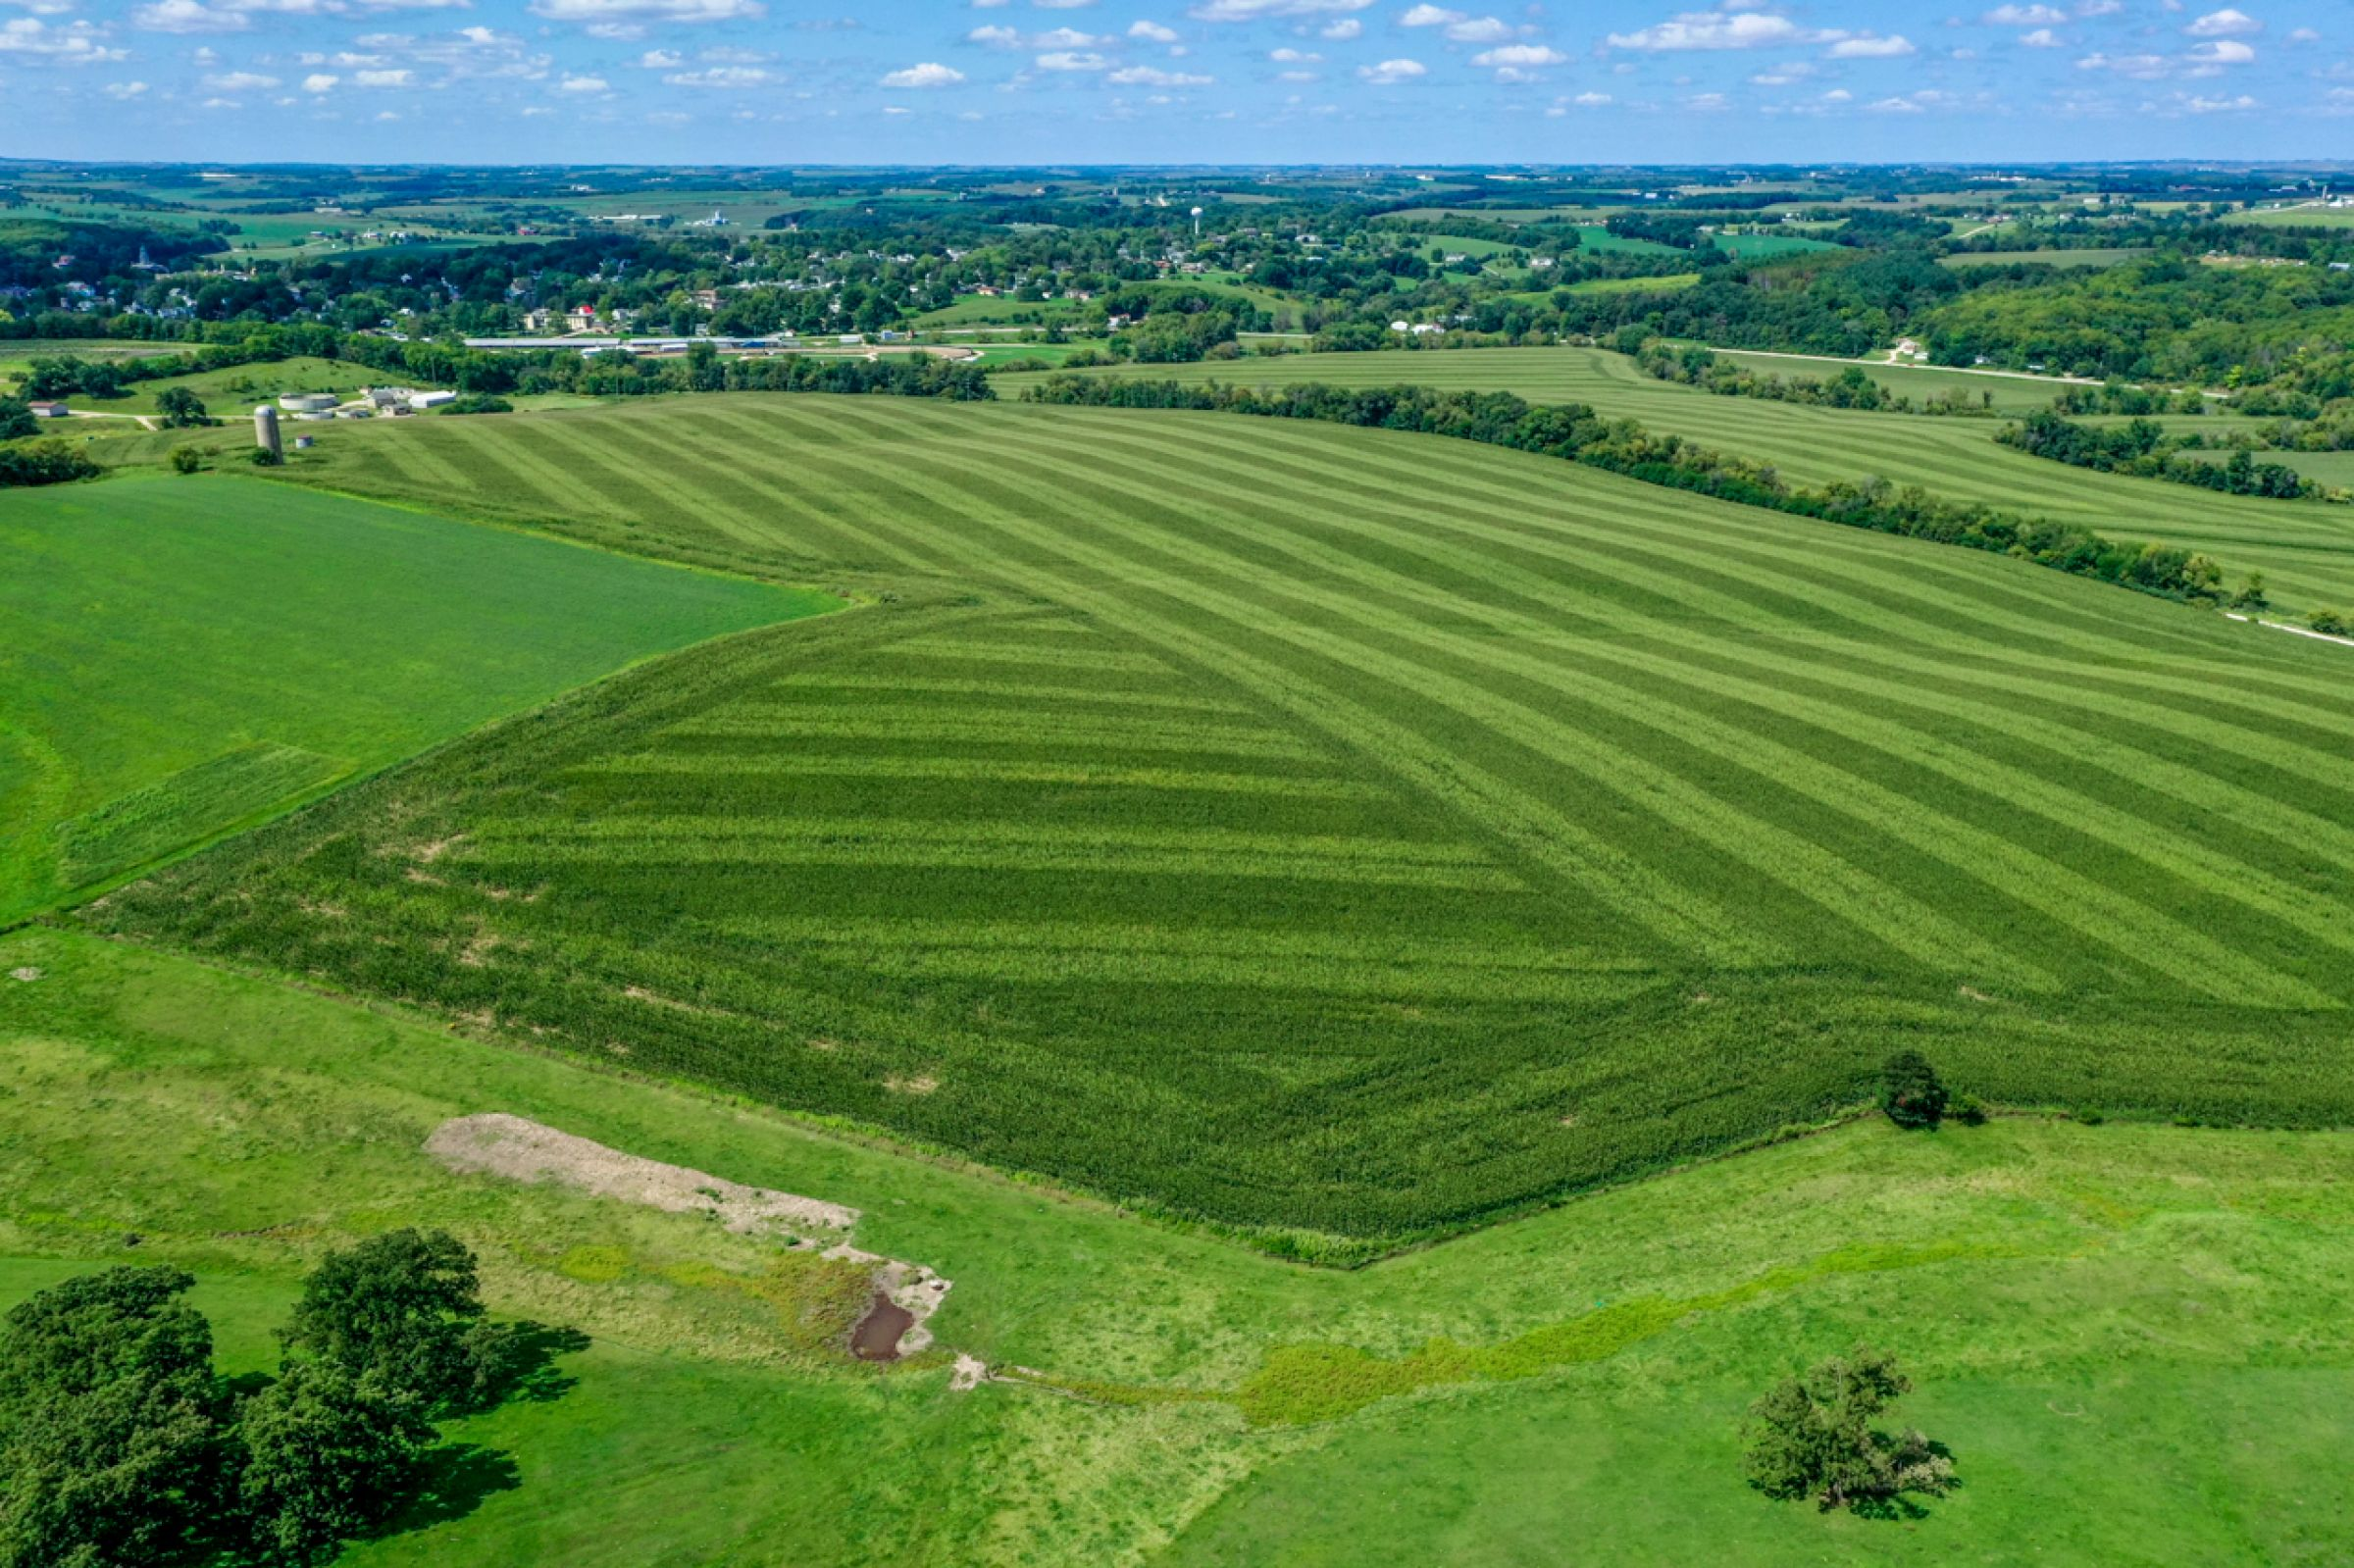 land-lafayette-county-wisconsin-120-acres-listing-number-15729-13-2021-09-03-204845.jpg